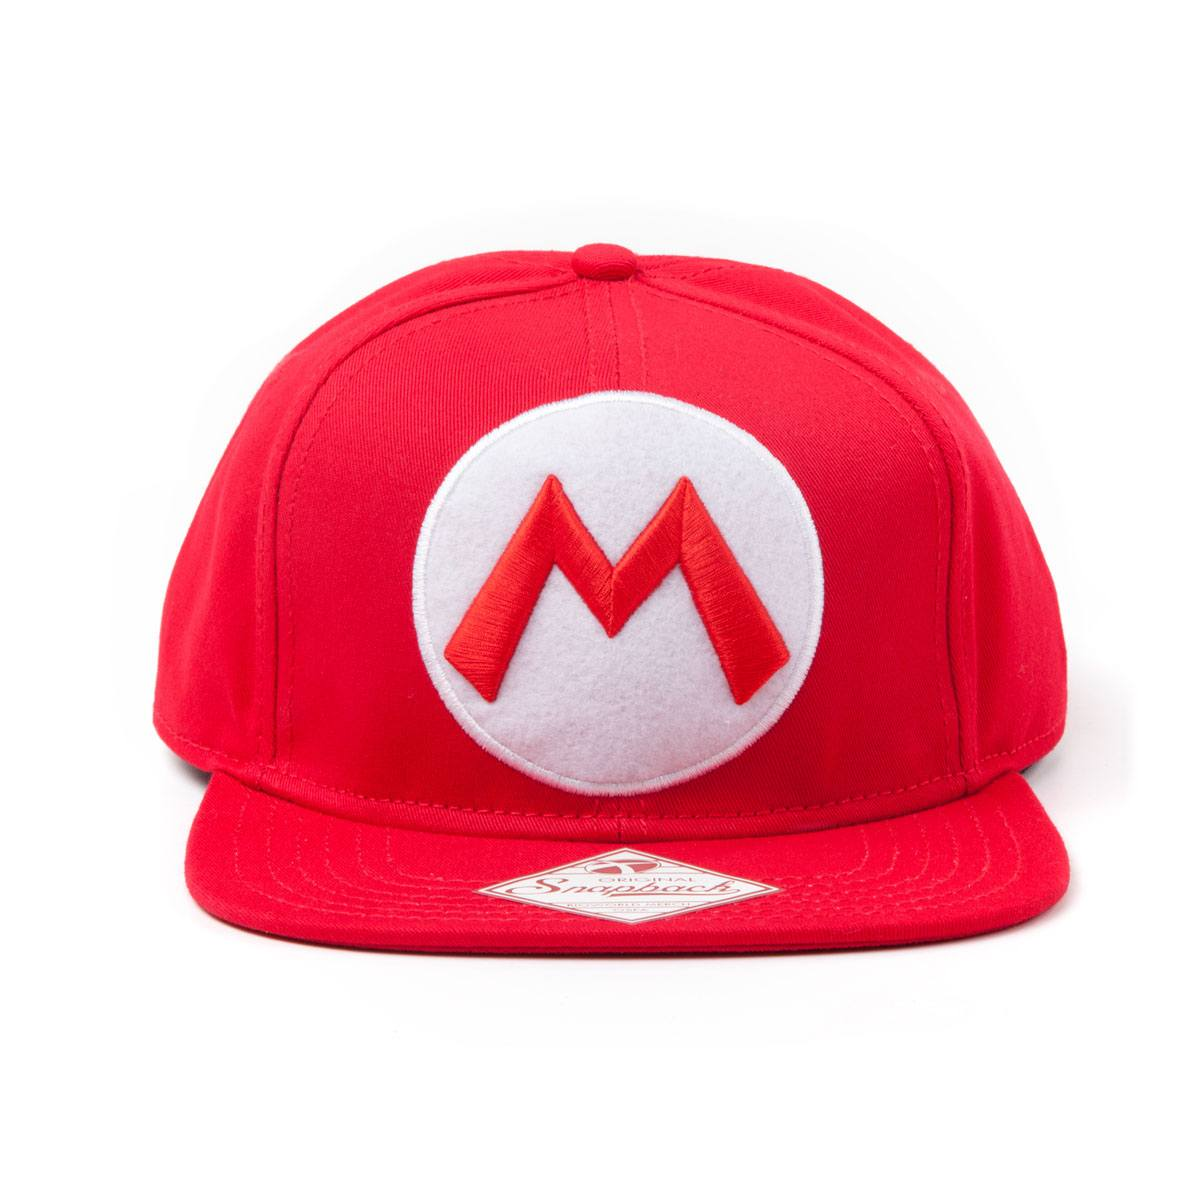 Nintendo Snapback Cap Red M Logo In Front